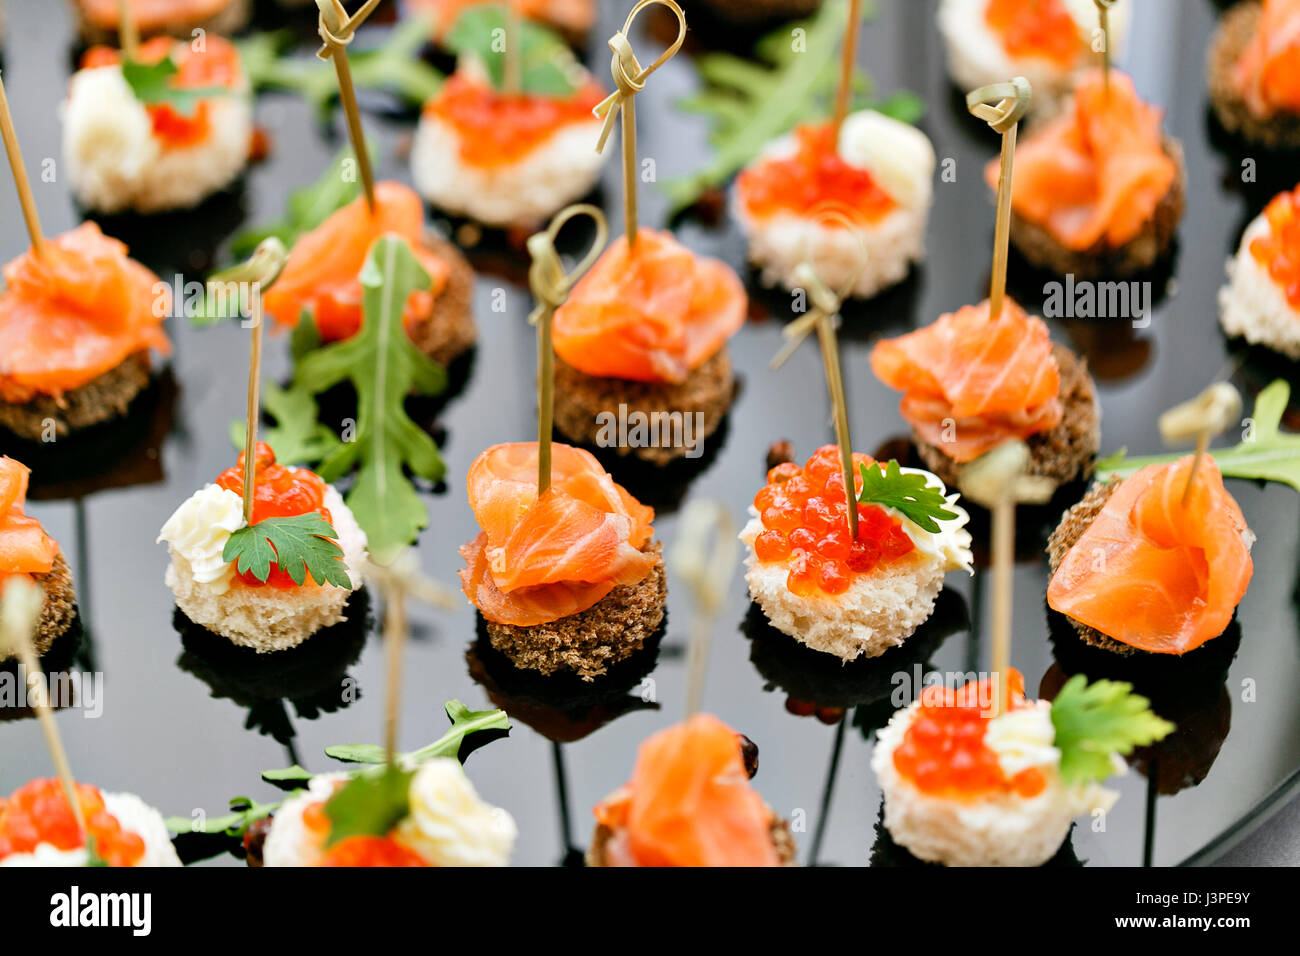 the buffet at the reception. Assortment of canapes. Banquet service. catering food, snacks with salmon and caviar. - Stock Image